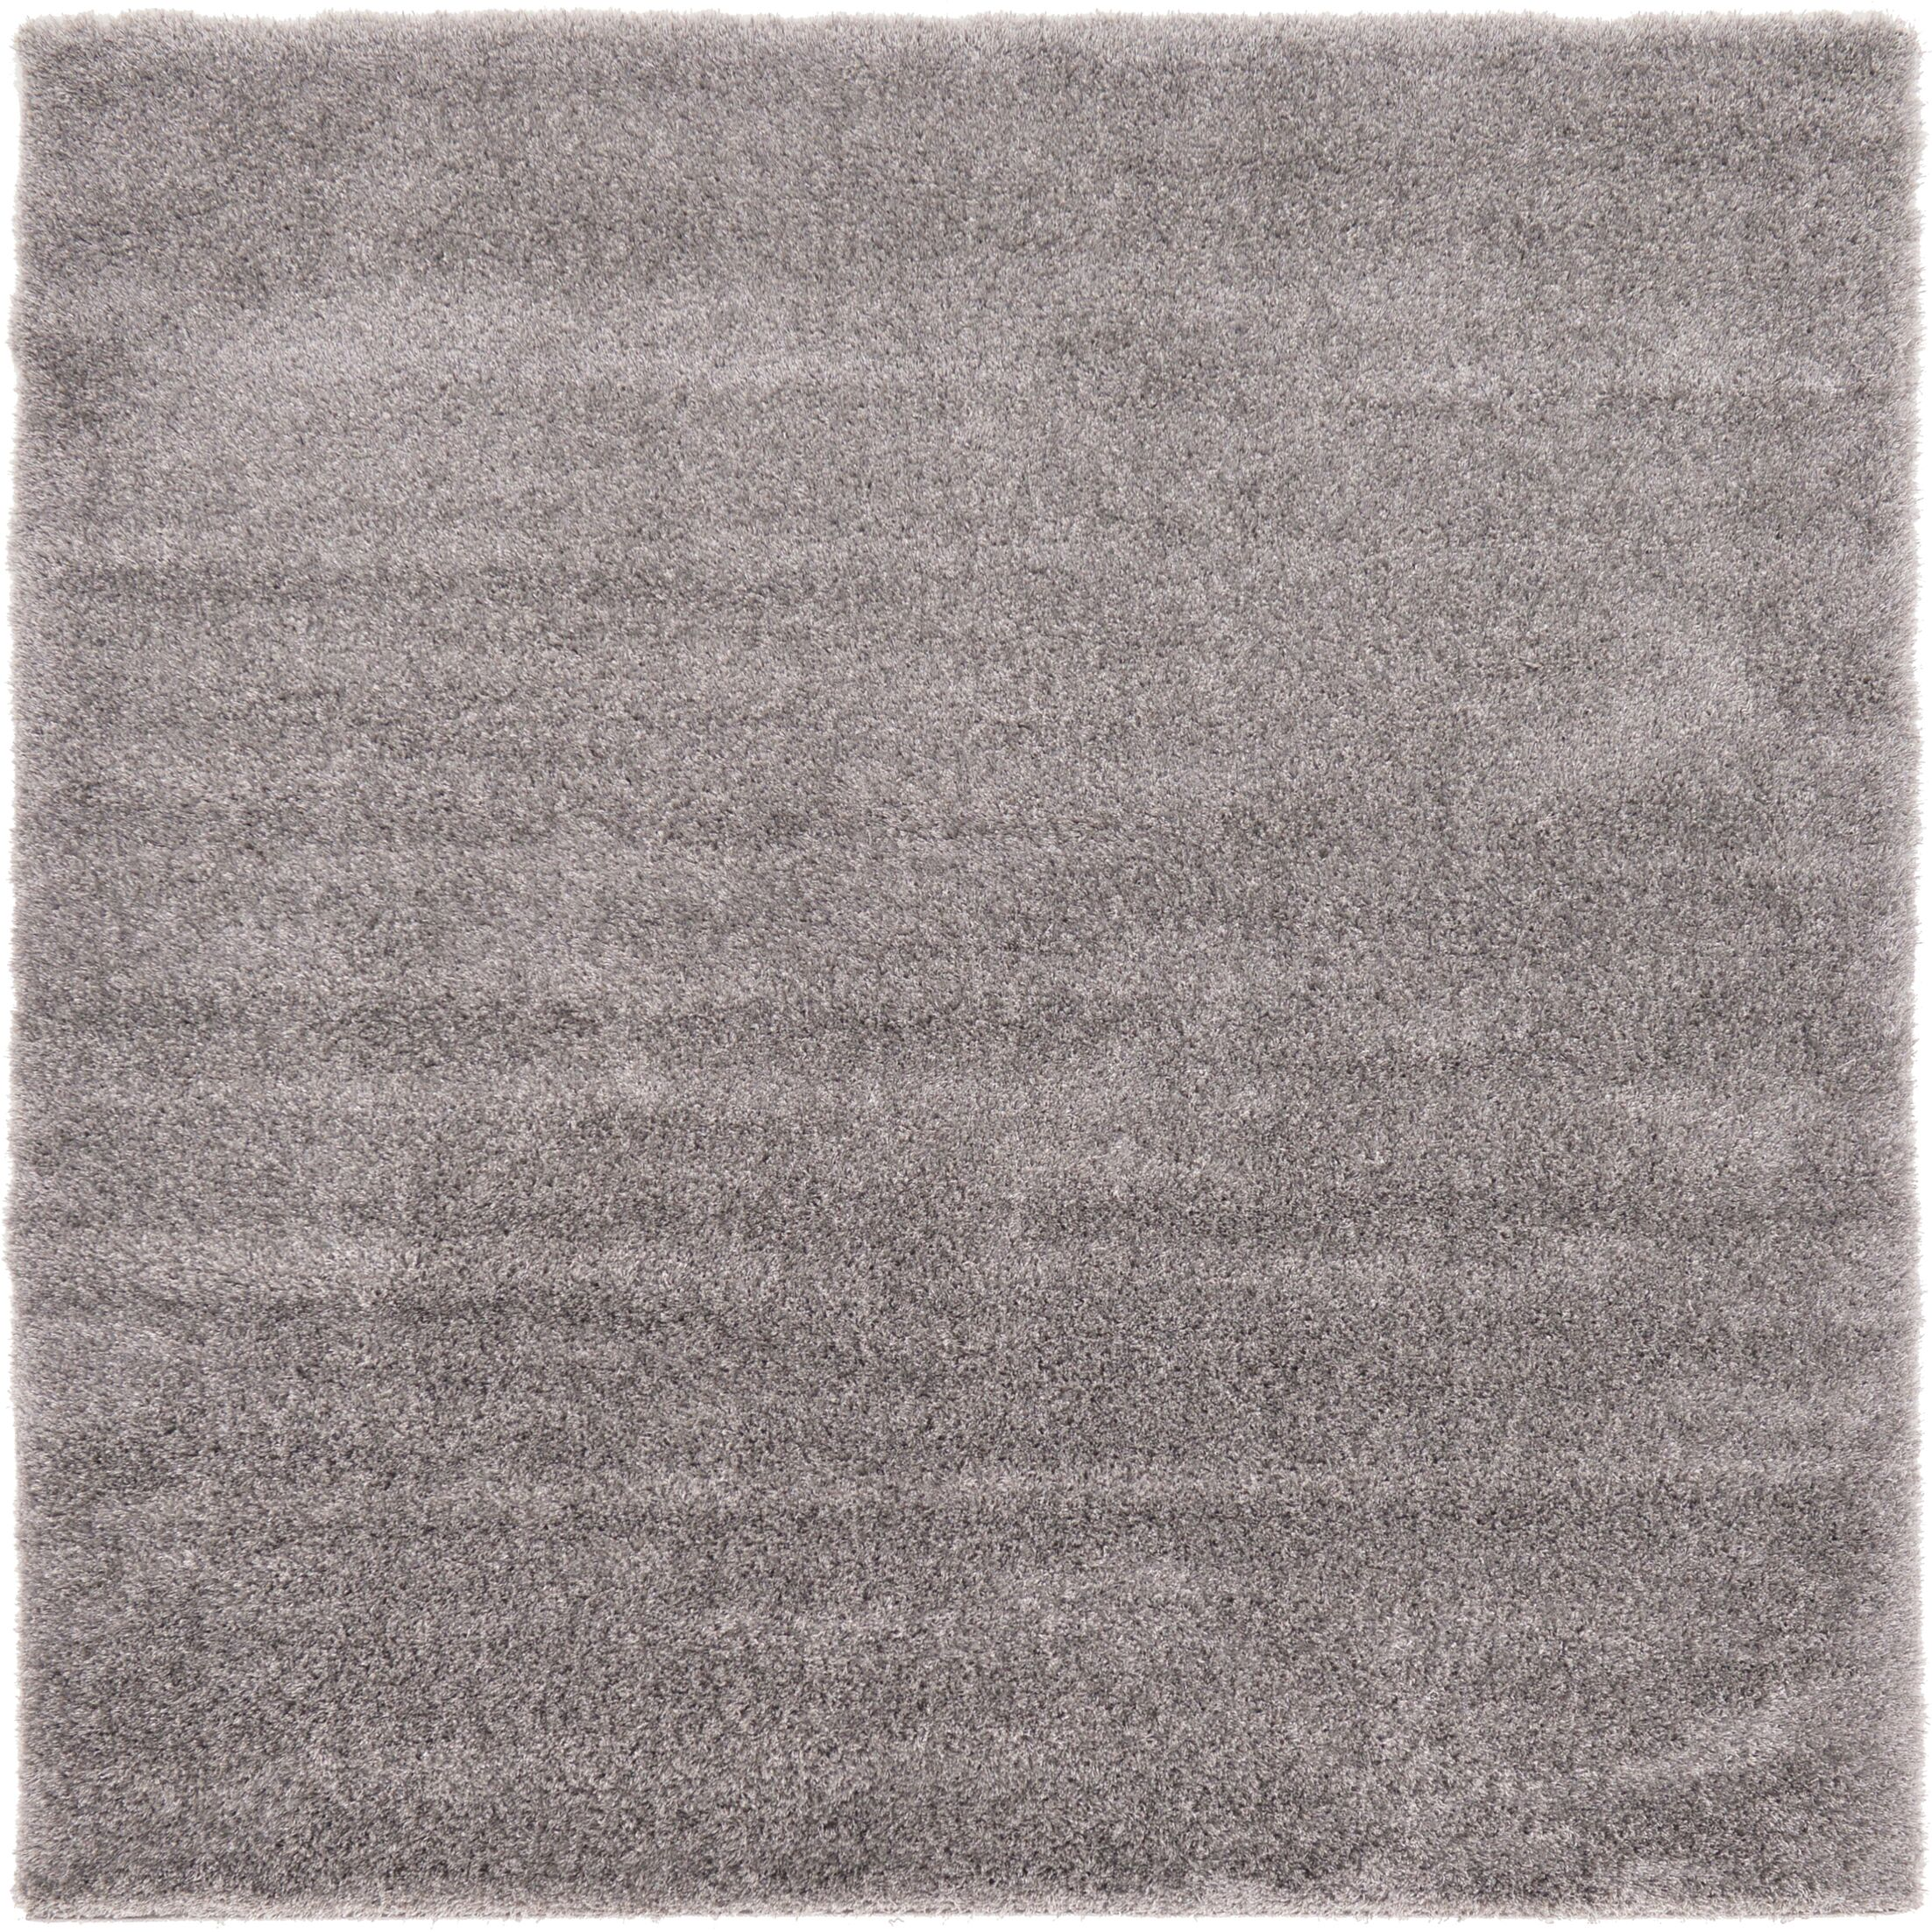 Evelyn Gray Area Rug Rug Size: Square 8'